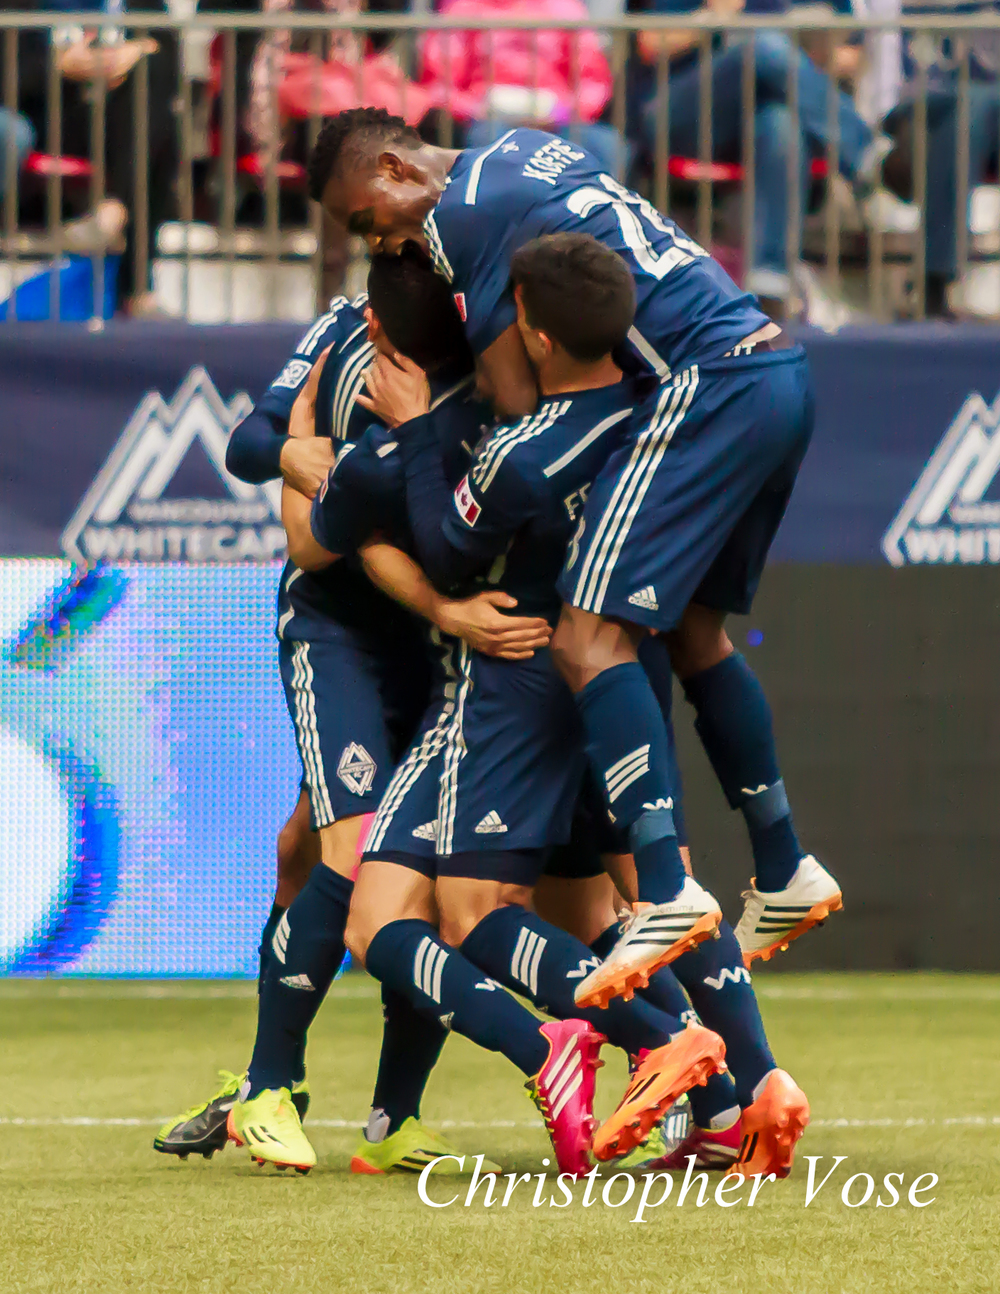 2014-05-03 Pedro Morales' First Goal Celebration.jpg